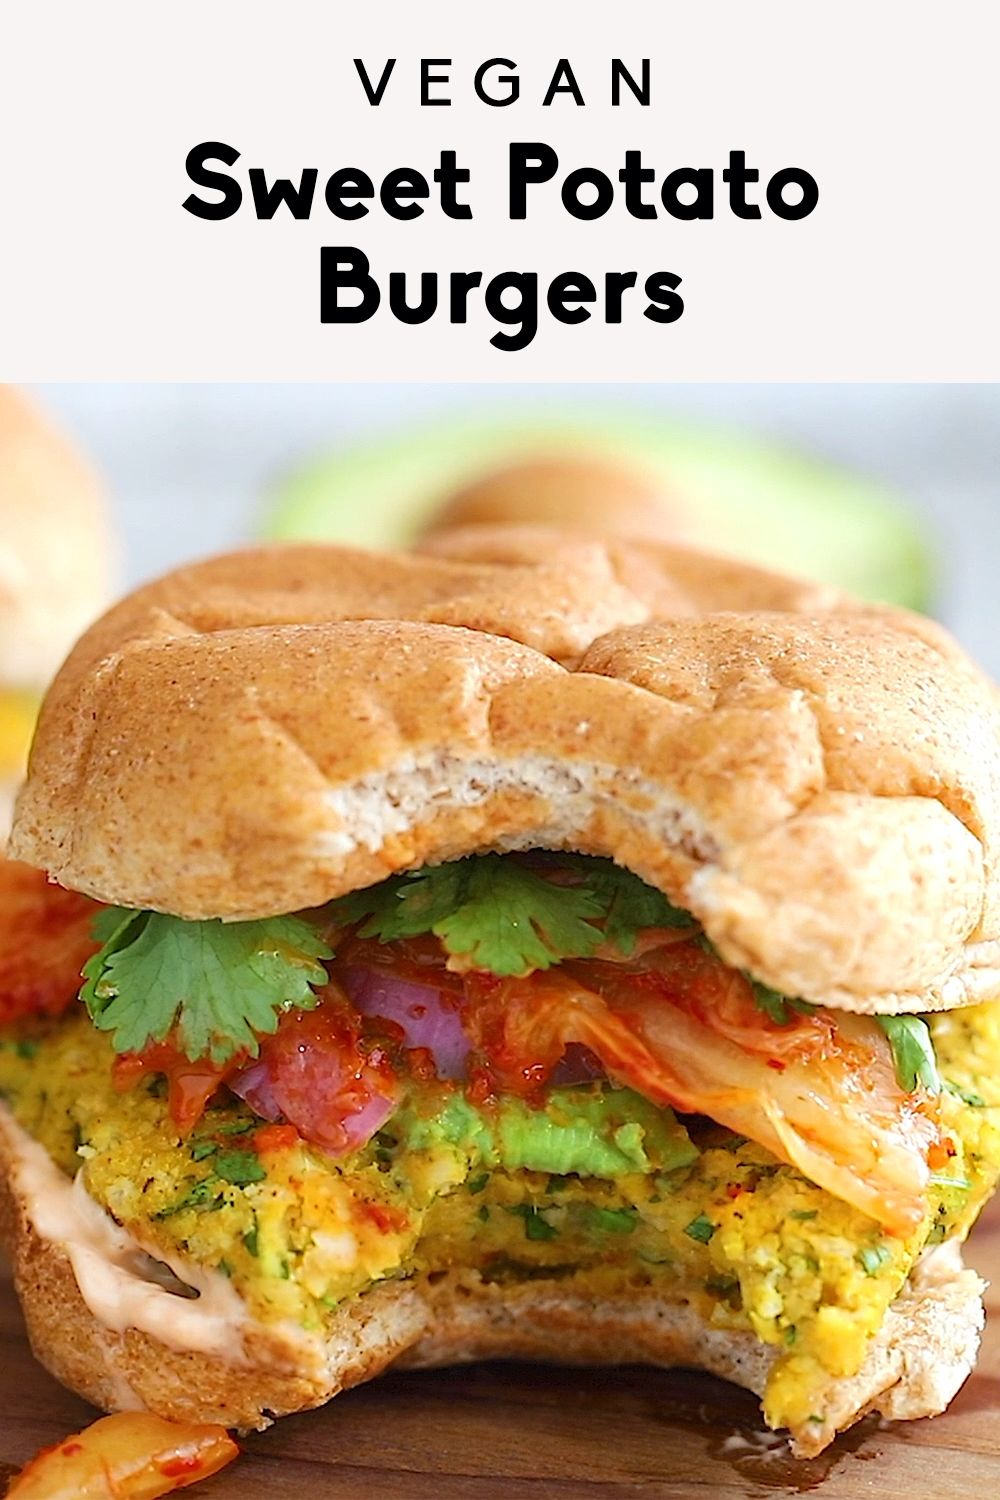 Vegan Sweet Potato Burgers images